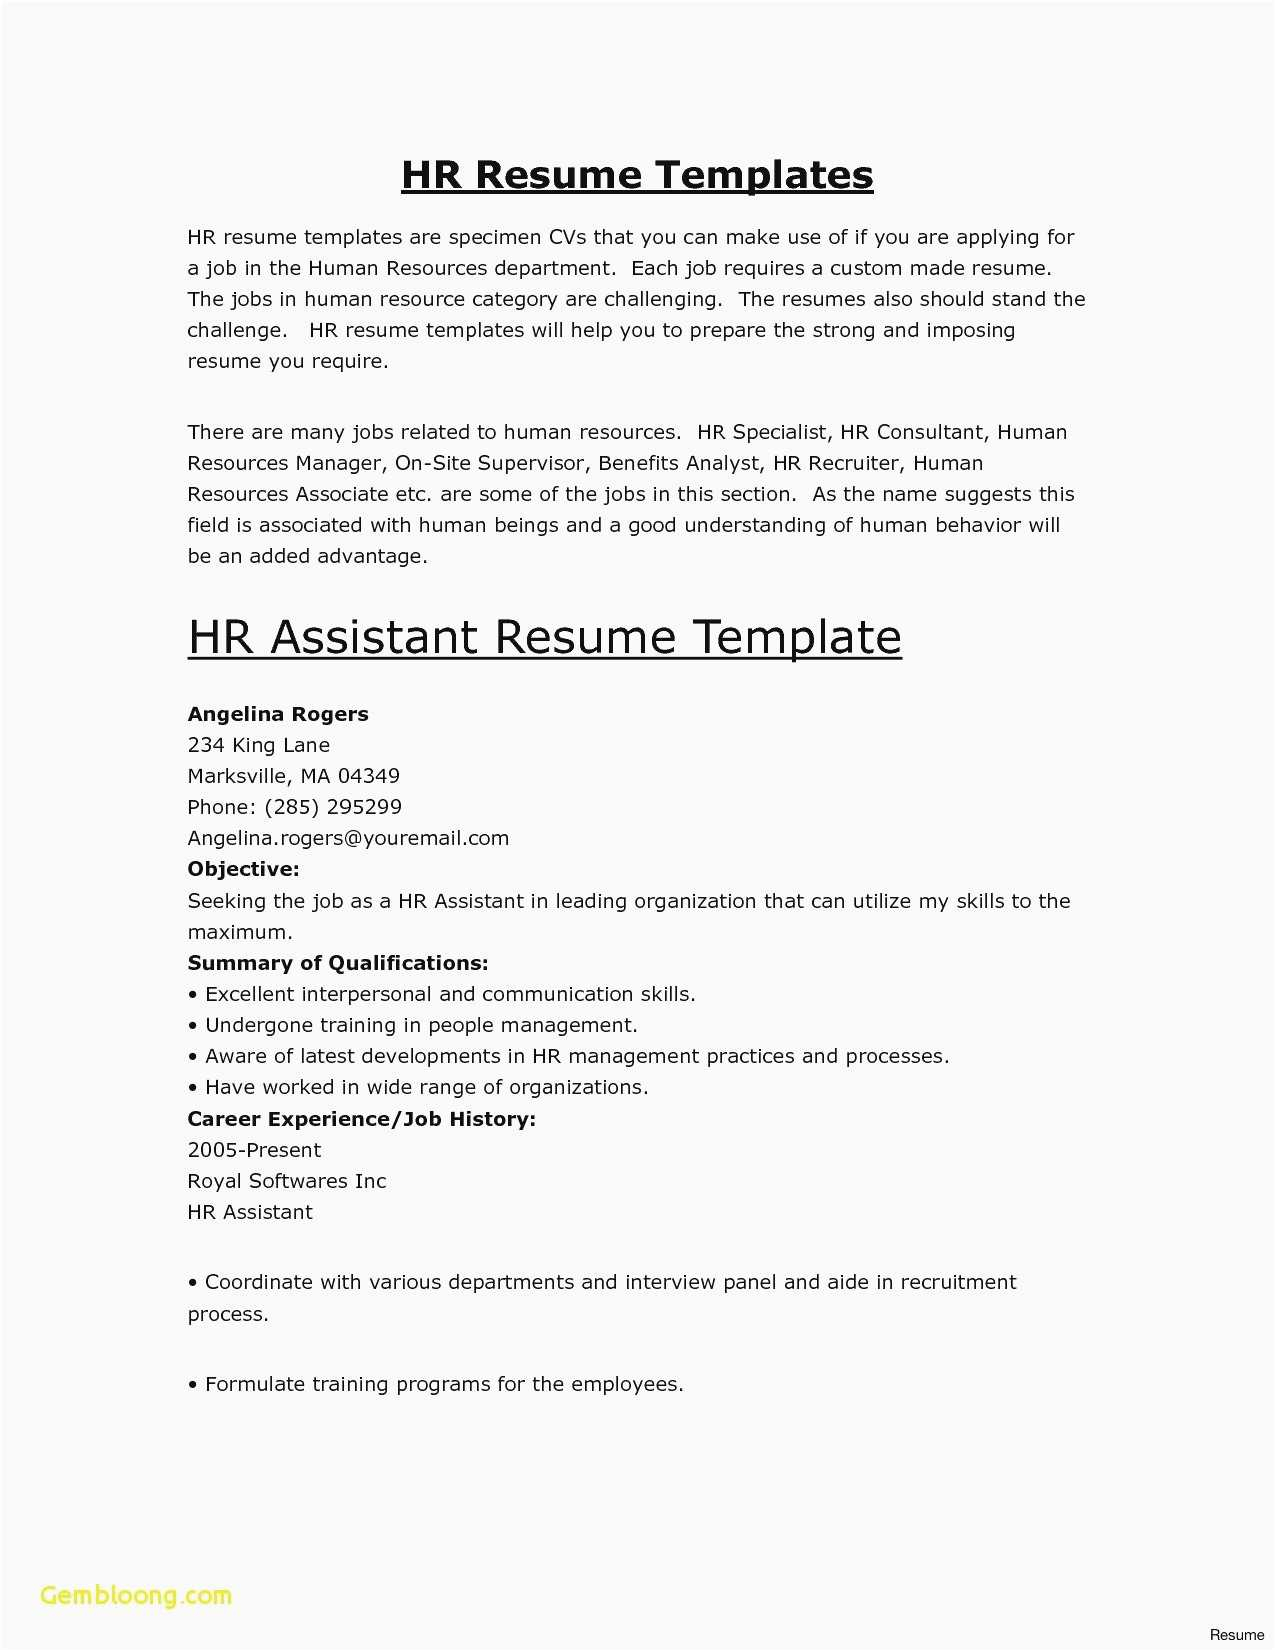 Emailable Resume Templates - 29 New Marketing Email Template Sample